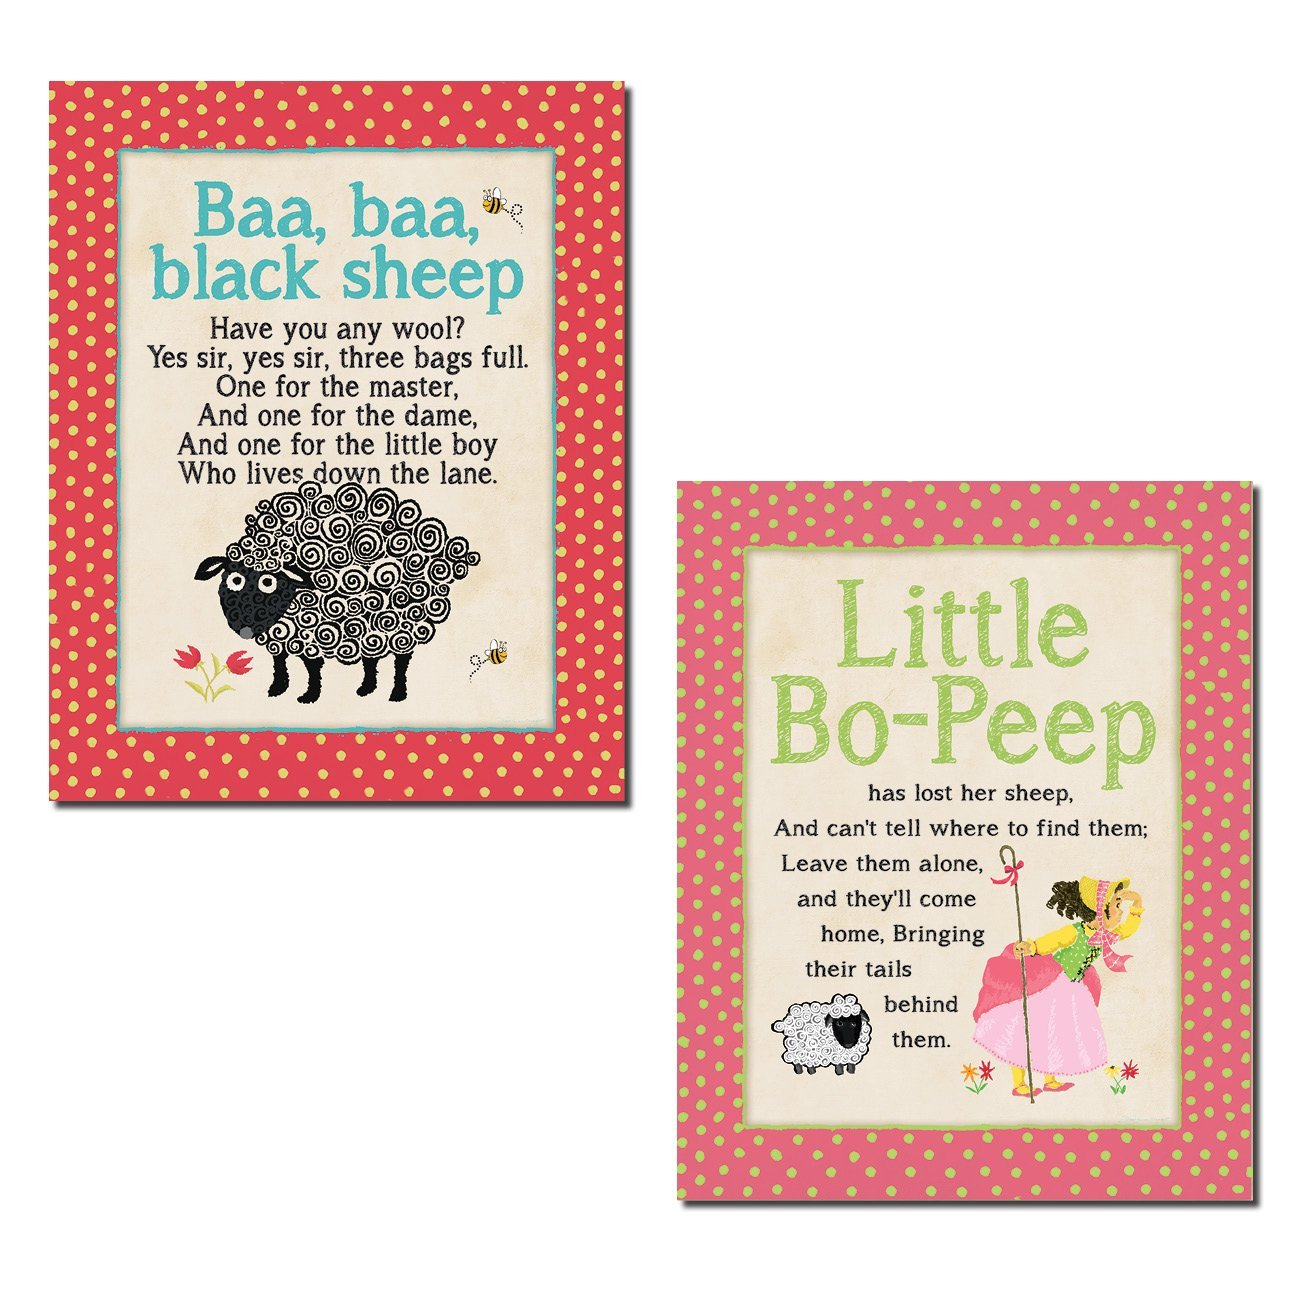 "Adorable Polka Dot Nursery Rhyme ""Baa, Baa Blacksheep"" and ""Little Bo-Peep""; Perfect for a Child's Room or Nursery; Two 11x14in Poster Prints"